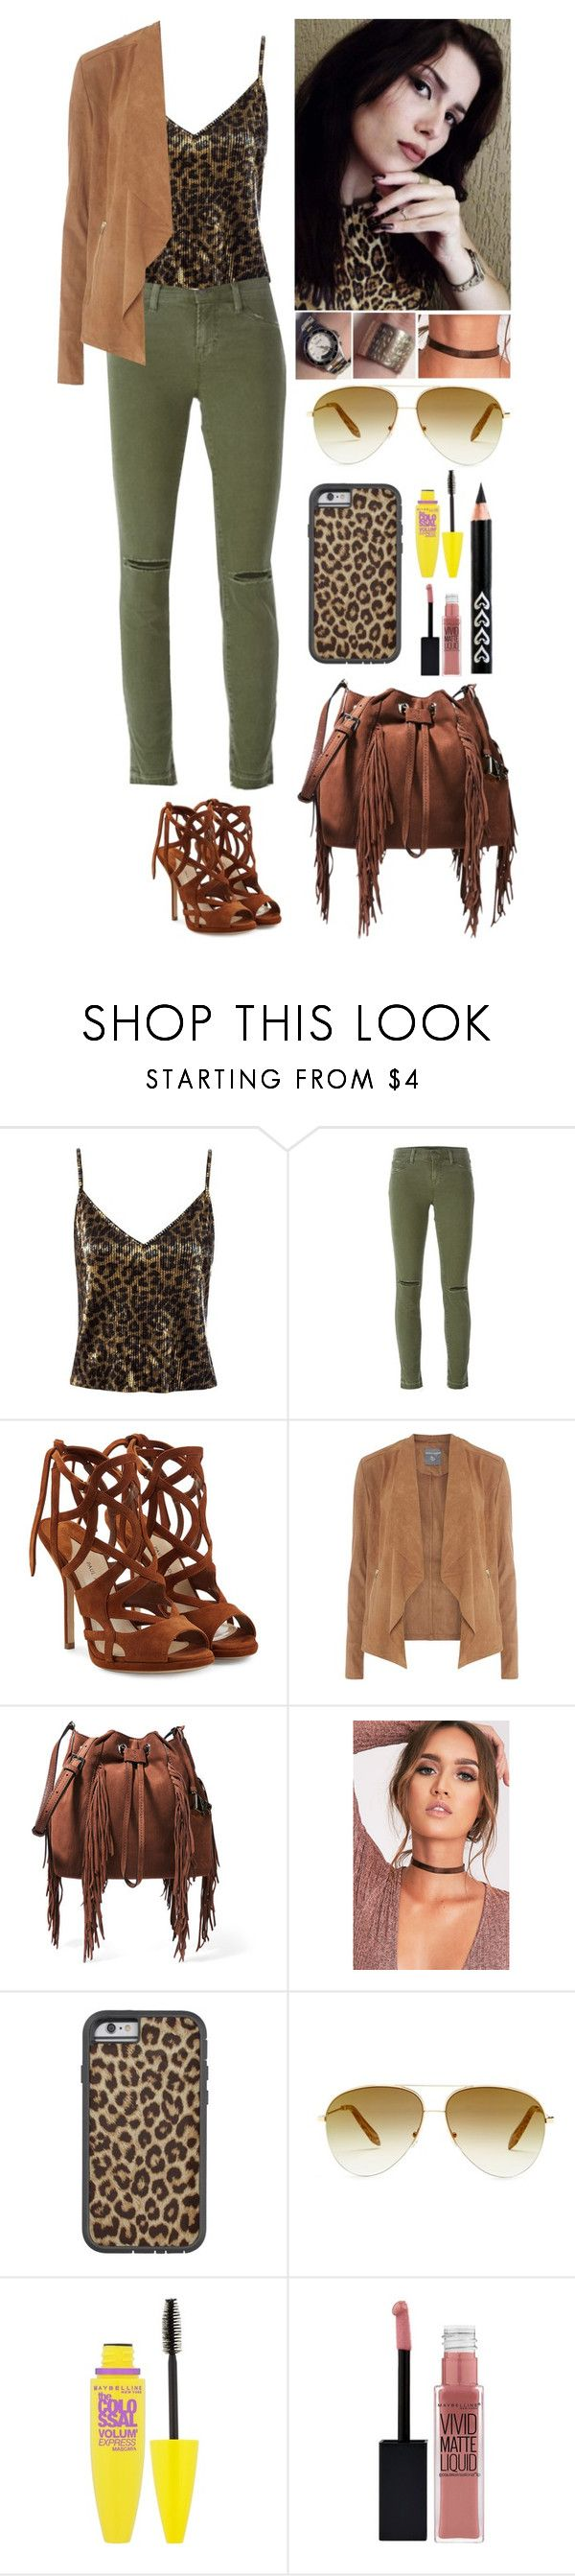 """Leopard Print + Brown and Green."" by annacastrolima ❤ liked on Polyvore featuring Sans Souci, J Brand, Paul Andrew, Dorothy Perkins, Maybelline, Diane Von Furstenberg, Victoria Beckham, chic, LeopardPrint and brownandgreen"